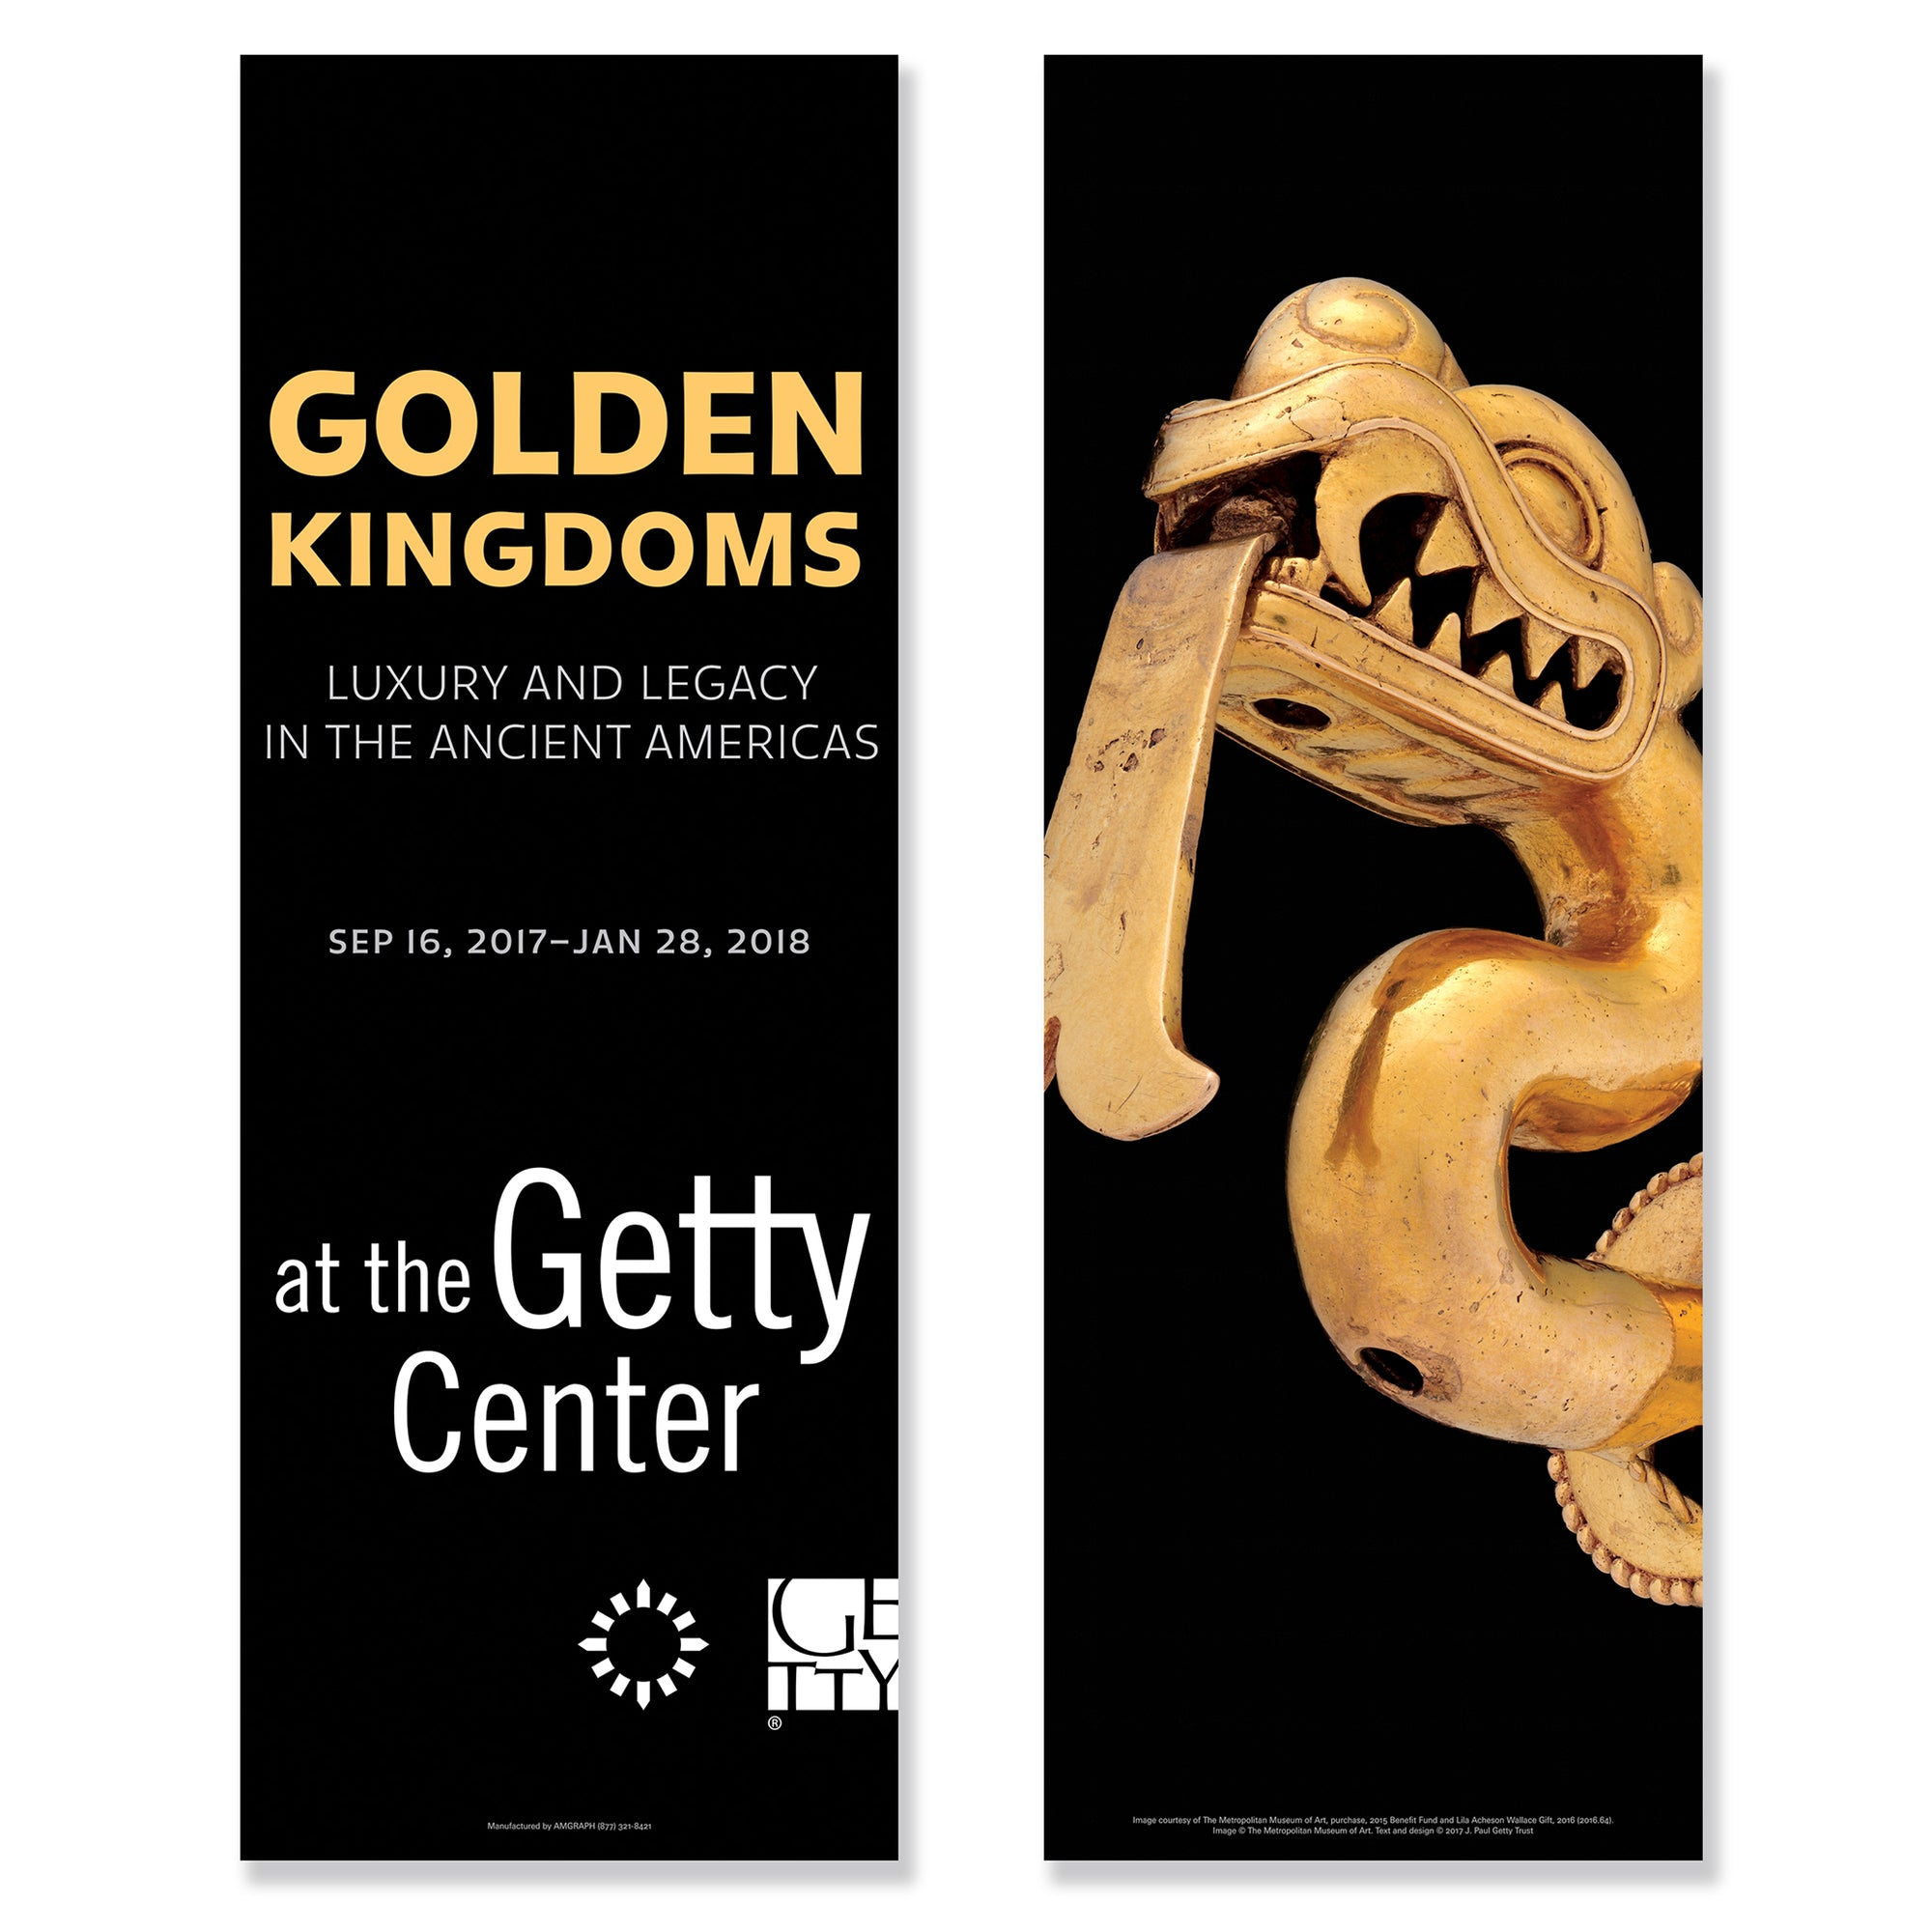 Getty Exhibition Banner - Golden Kingdoms: Luxury and Legacy in the Ancient Americas - Gold Serpent